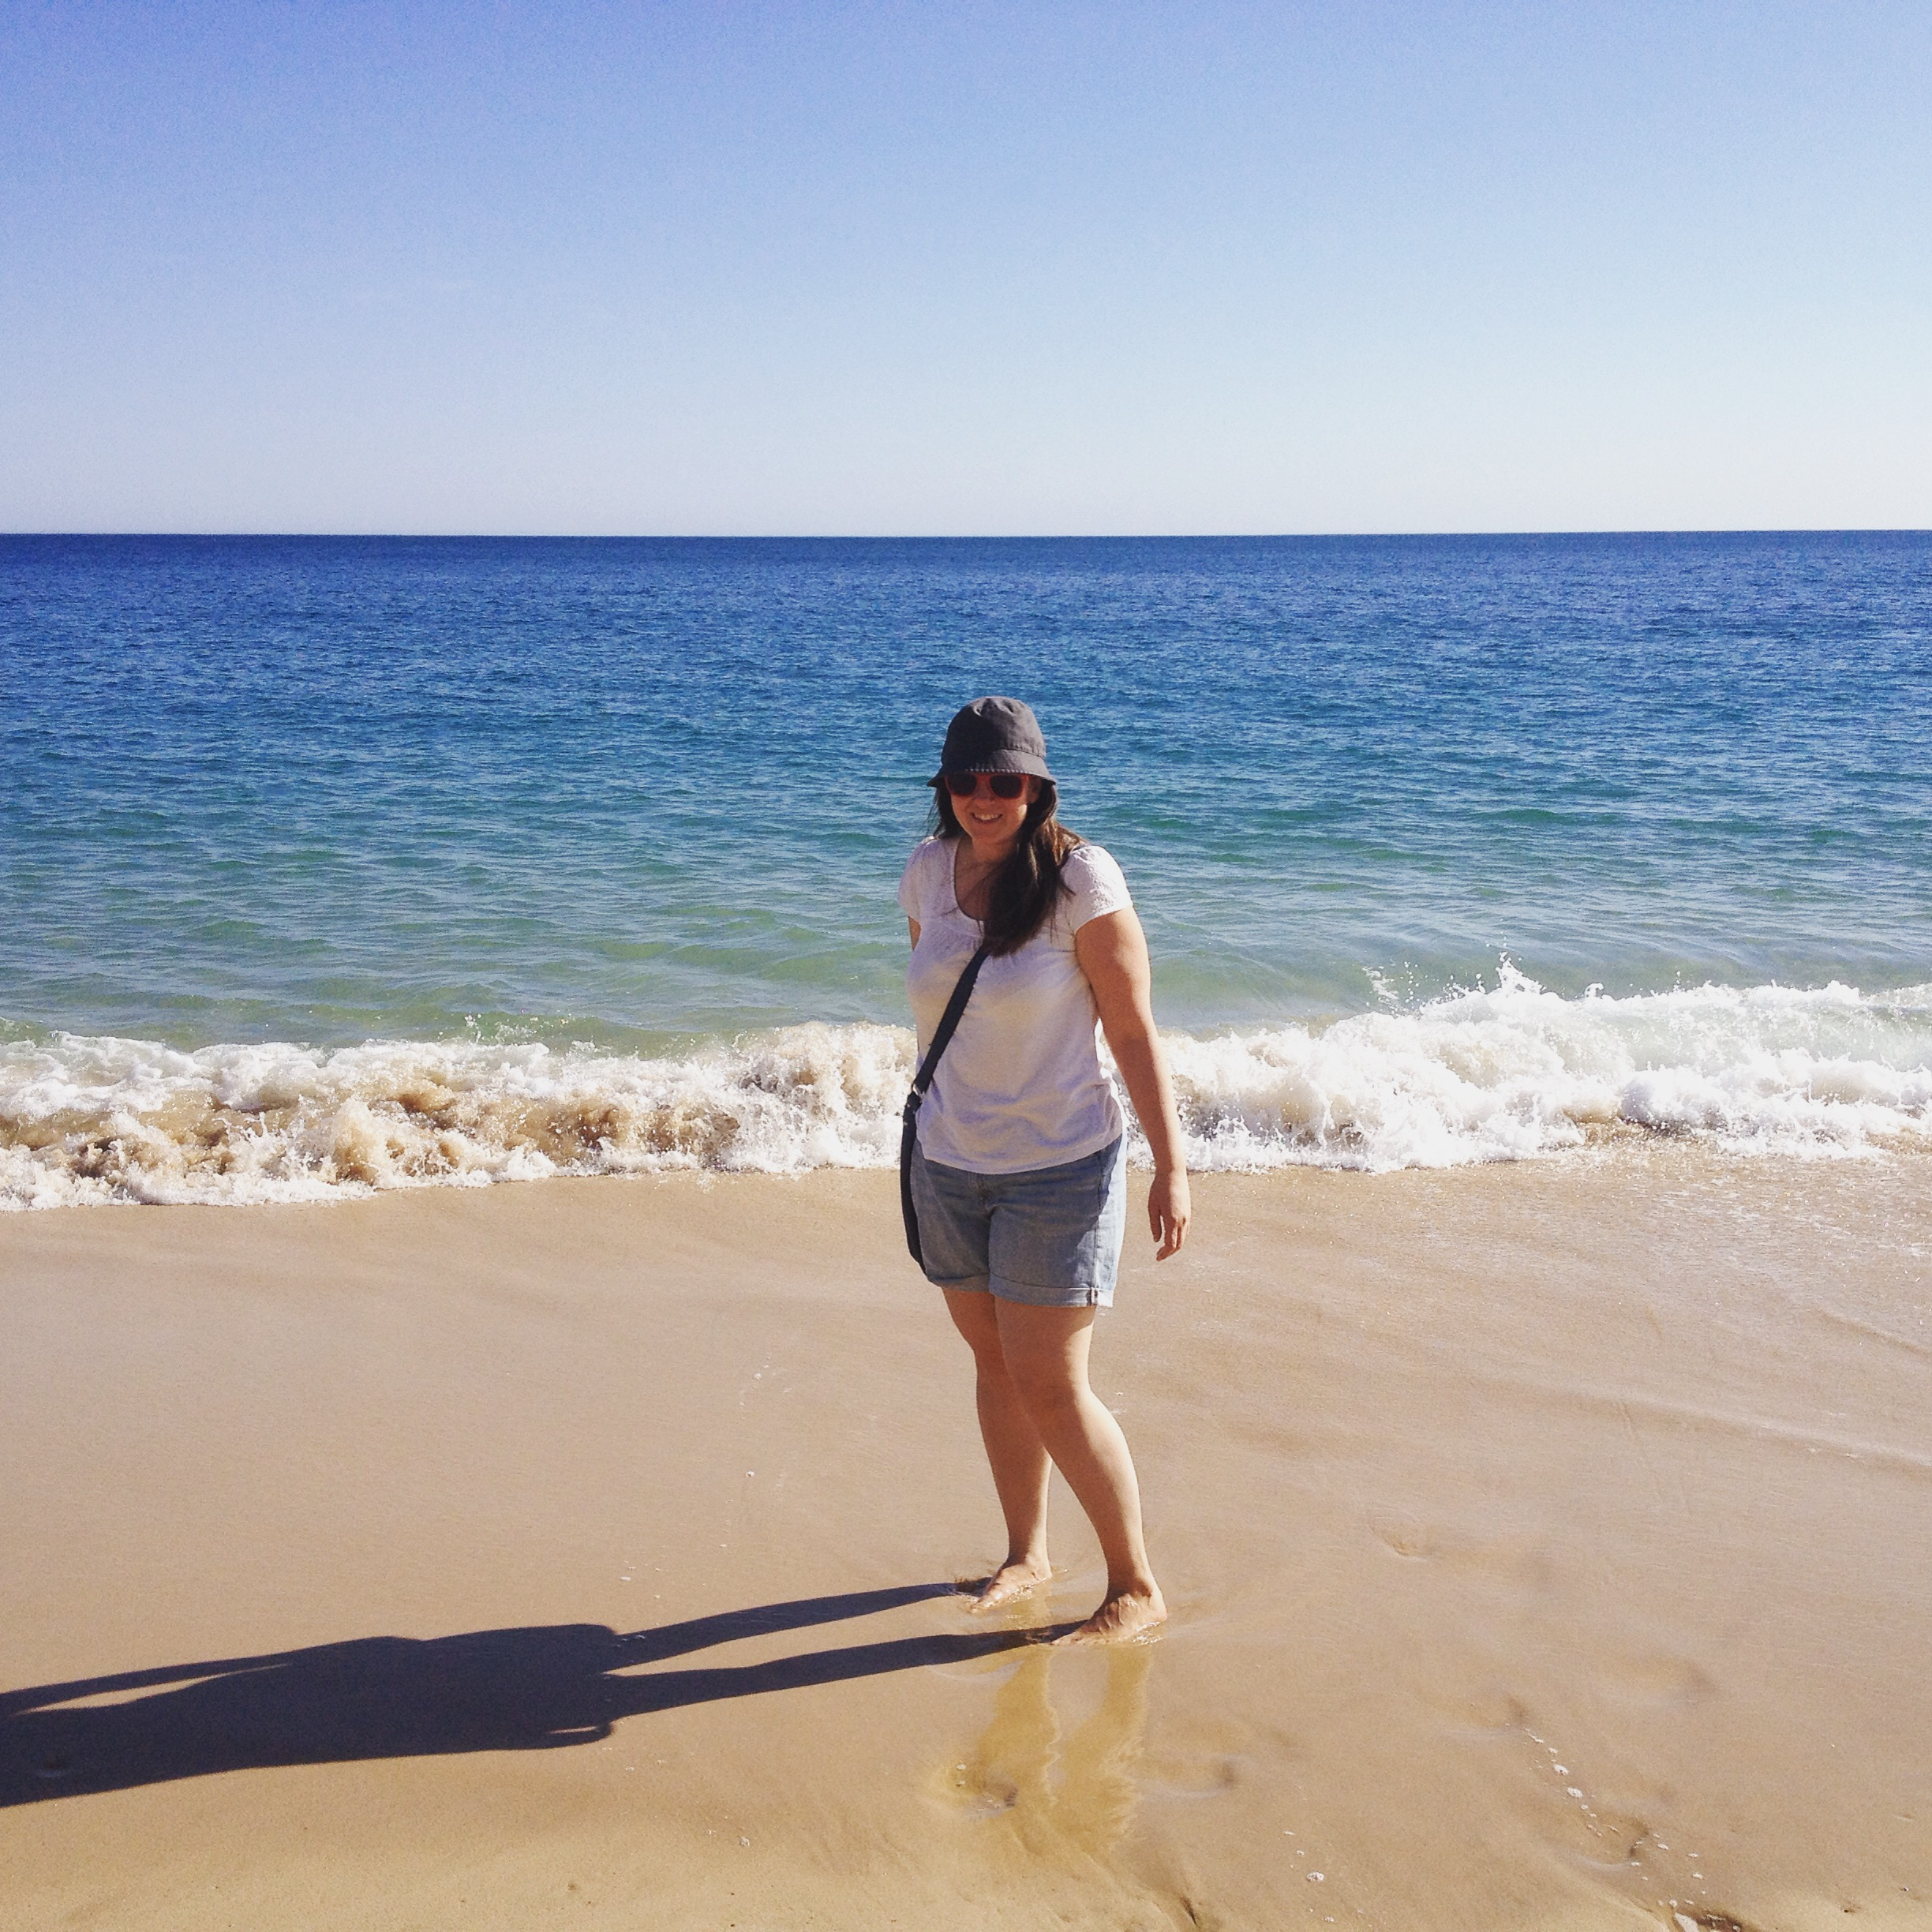 Sesimbra, May 2015